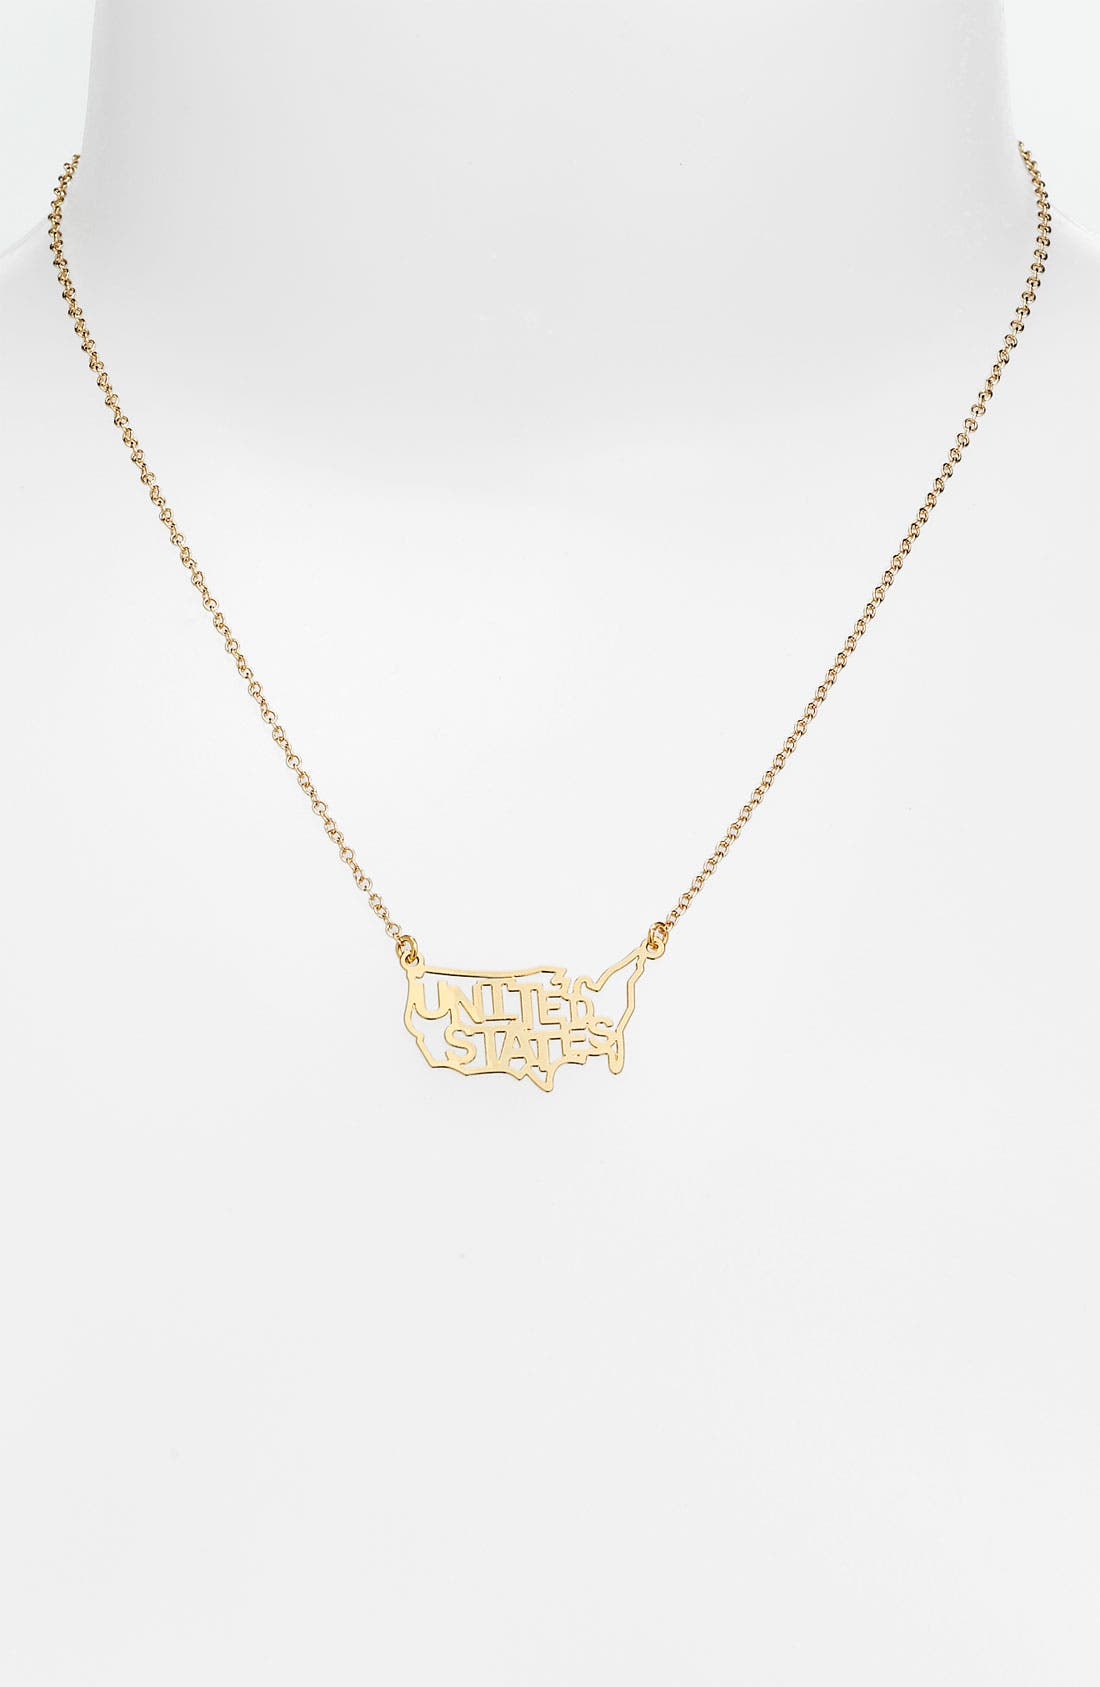 Alternate Image 1 Selected - Kris Nations 'USA' Necklace